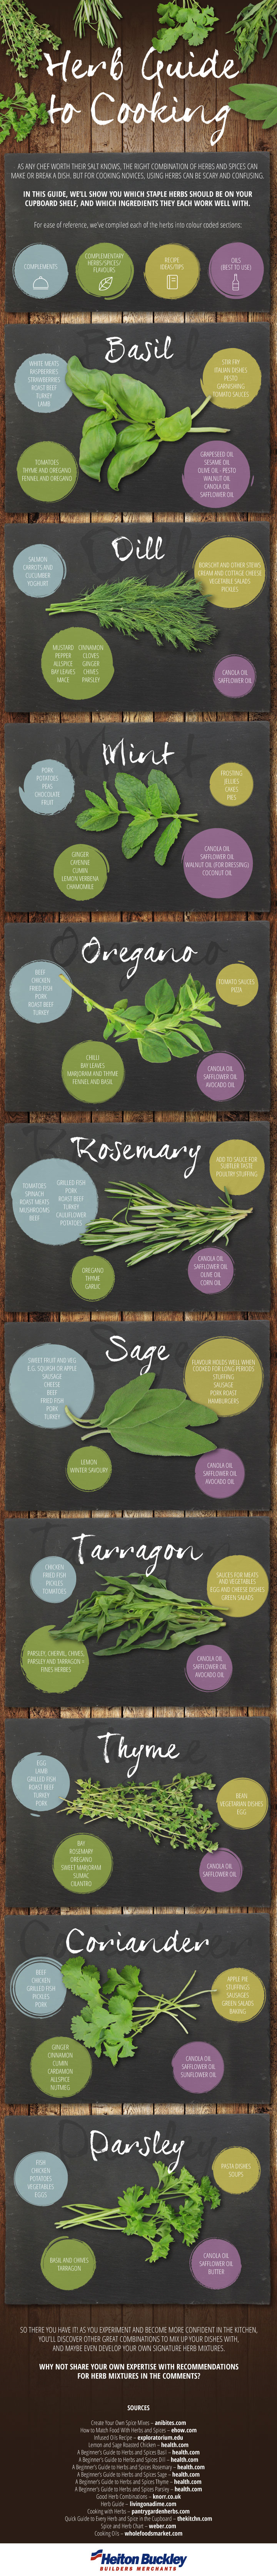 herb-guide-to-cooking